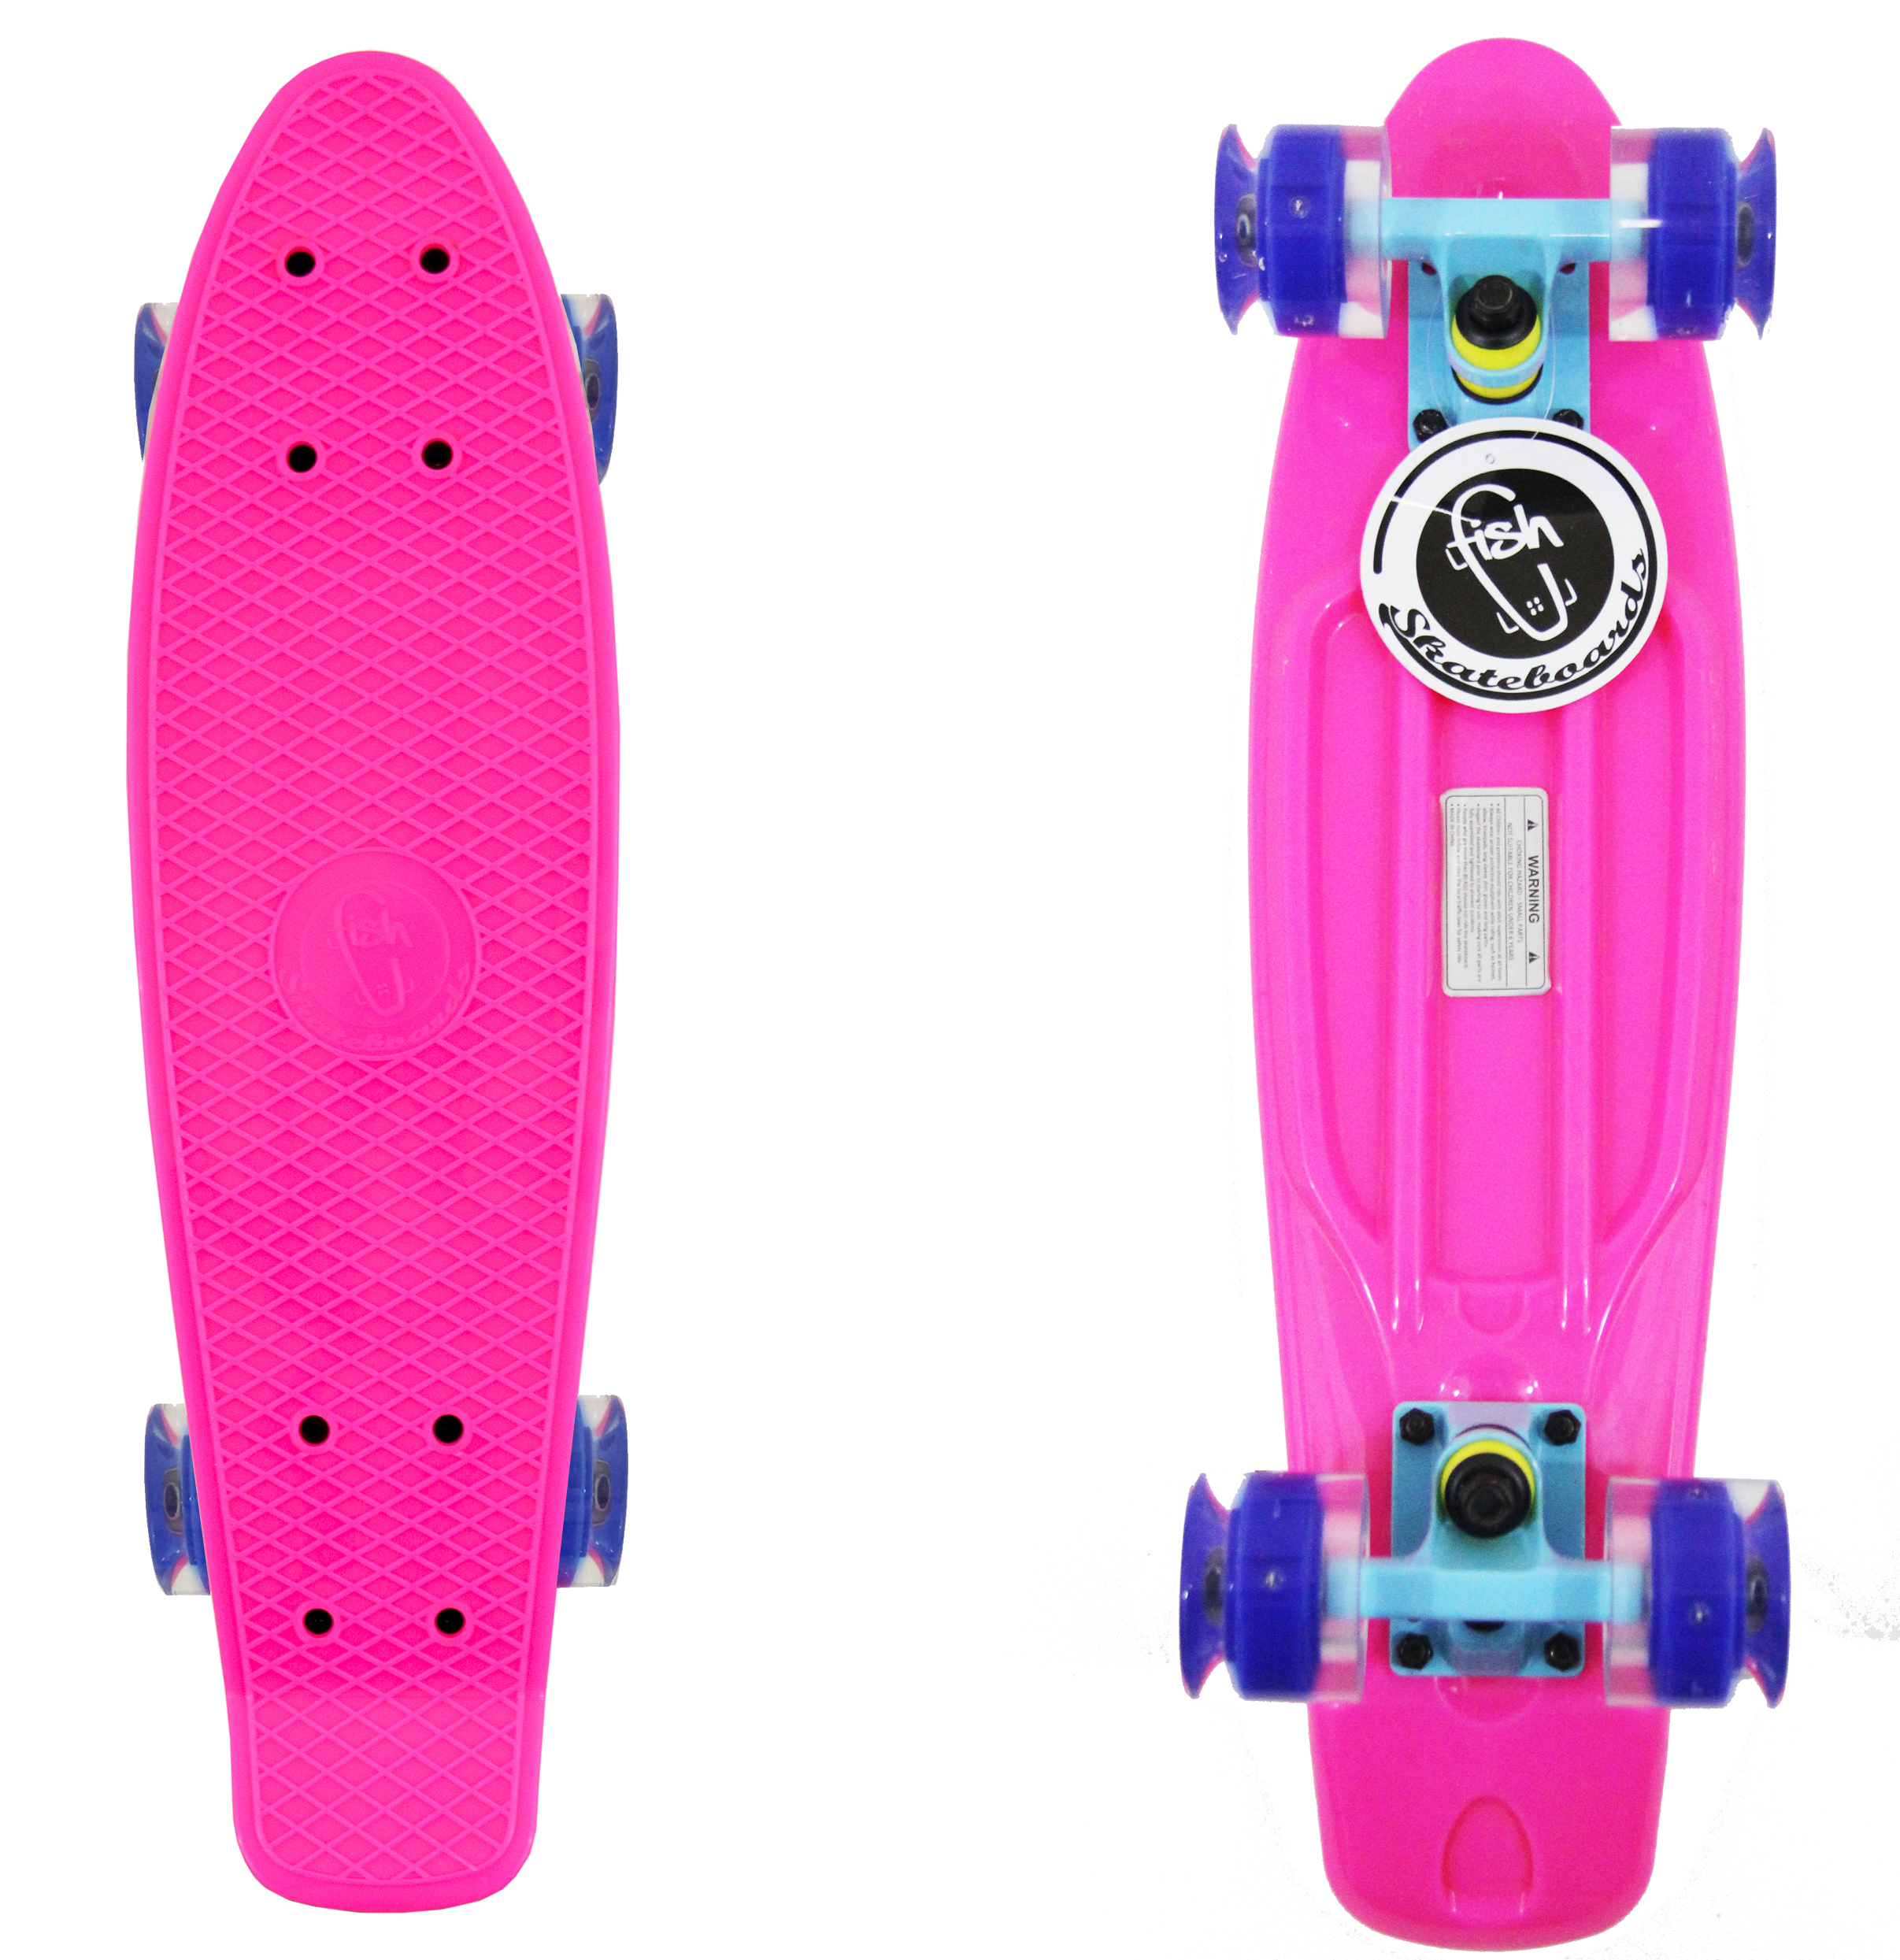 PInk Fish Skateboard Plastic Retro Blank Cruiser Blue Trucks Blue LED Wheels